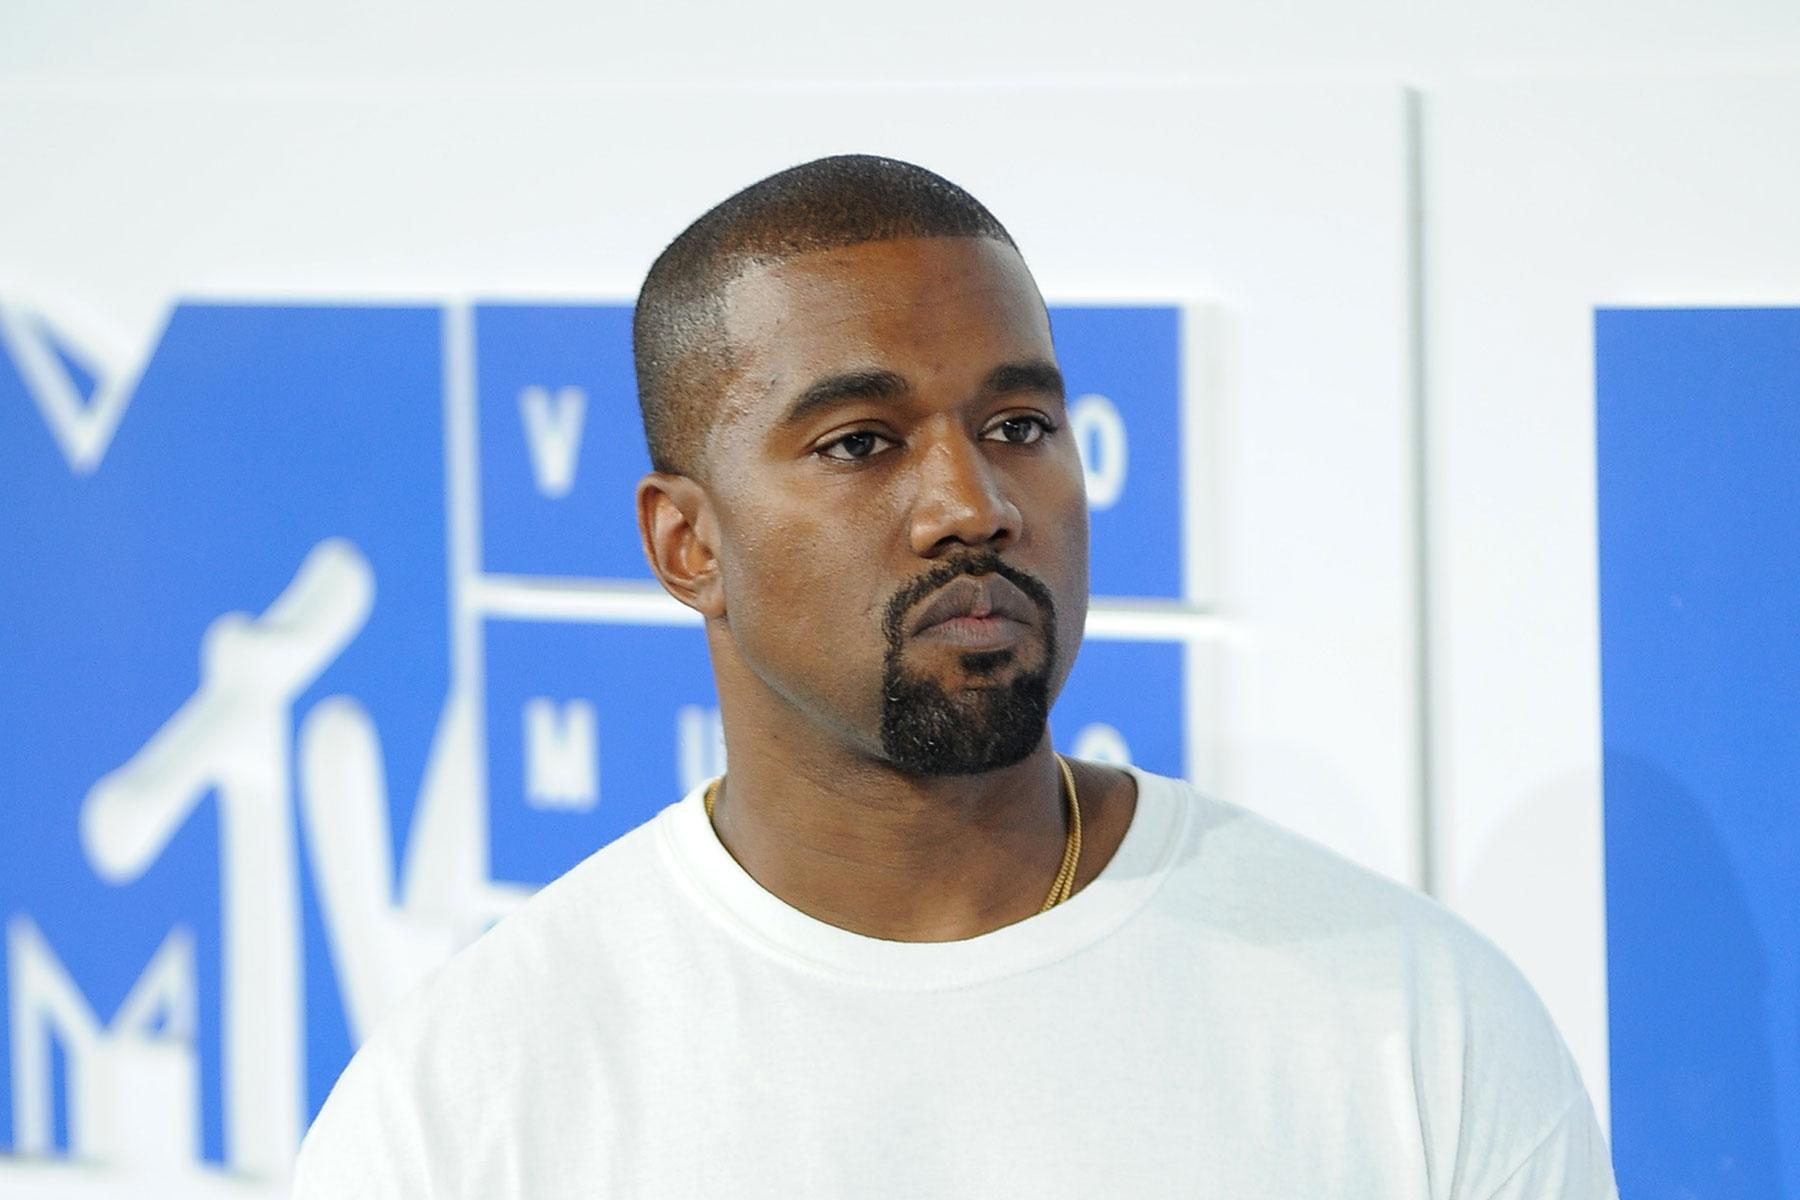 Kanye West running for President in 2024 - Kanye West 'working for President in 2024'